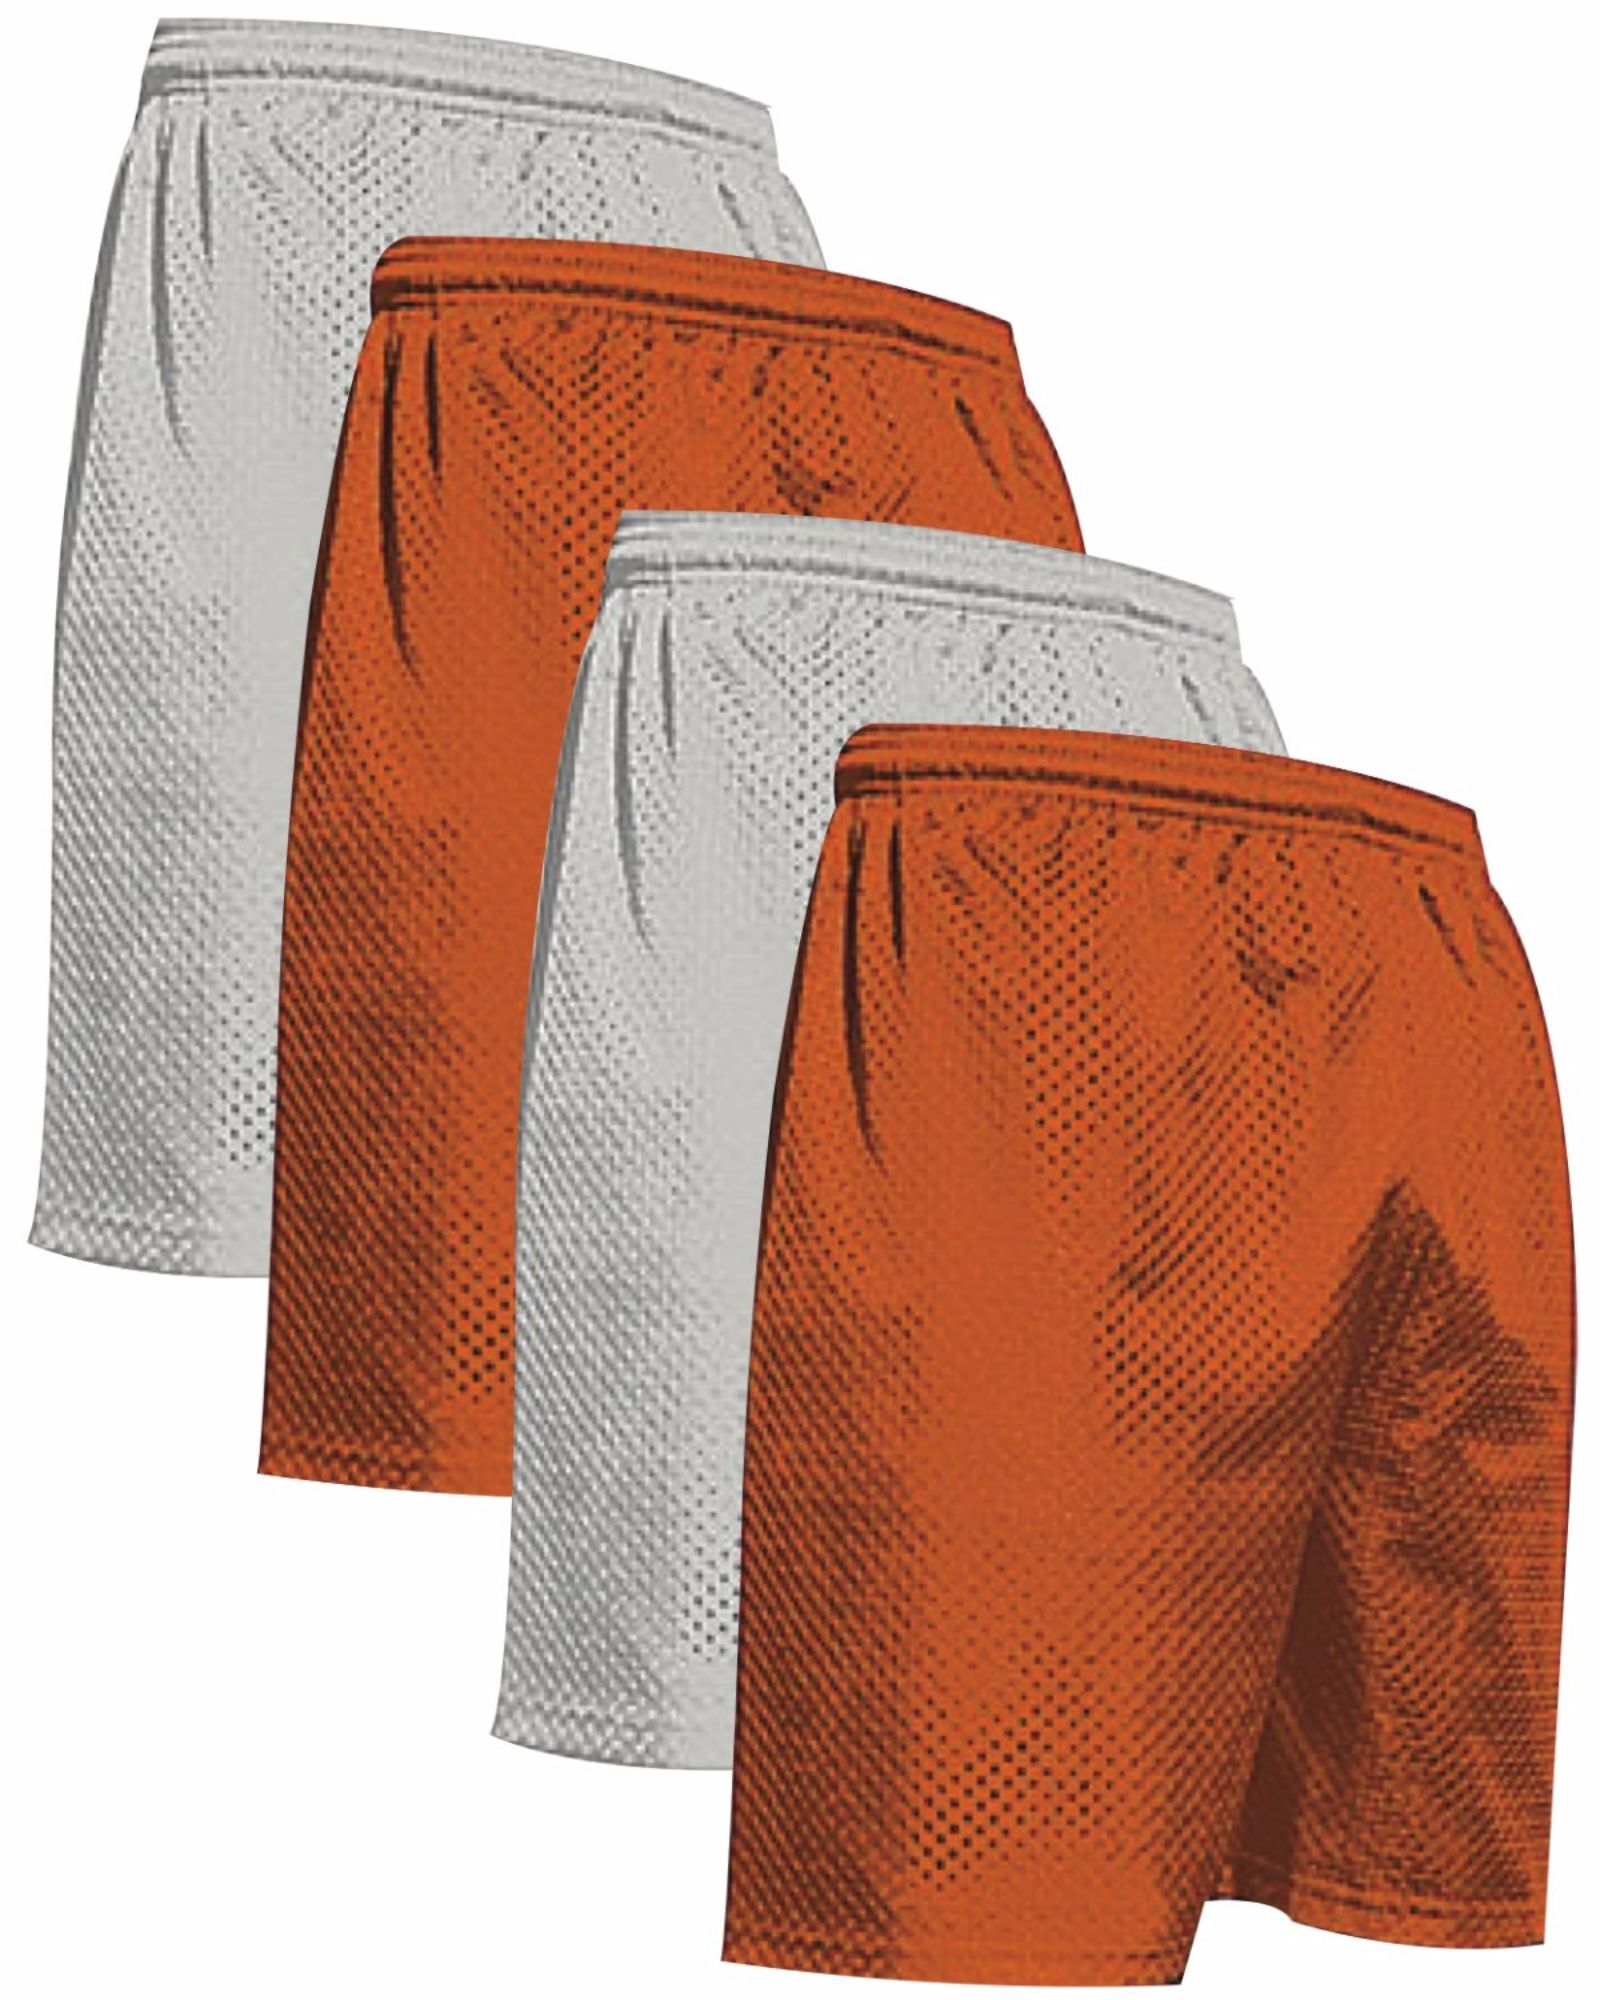 """VALUE PACK  > BUY 2 GET 2 FREE >  4 PACK > THE RAM BRAND > Men's  9"""" Performance Pro Mesh Gym Champ Shorts (XS-4XL) $10 S/H is on the 1st Pack only. In this Pack: (XS)(2Silver/2Orange)"""